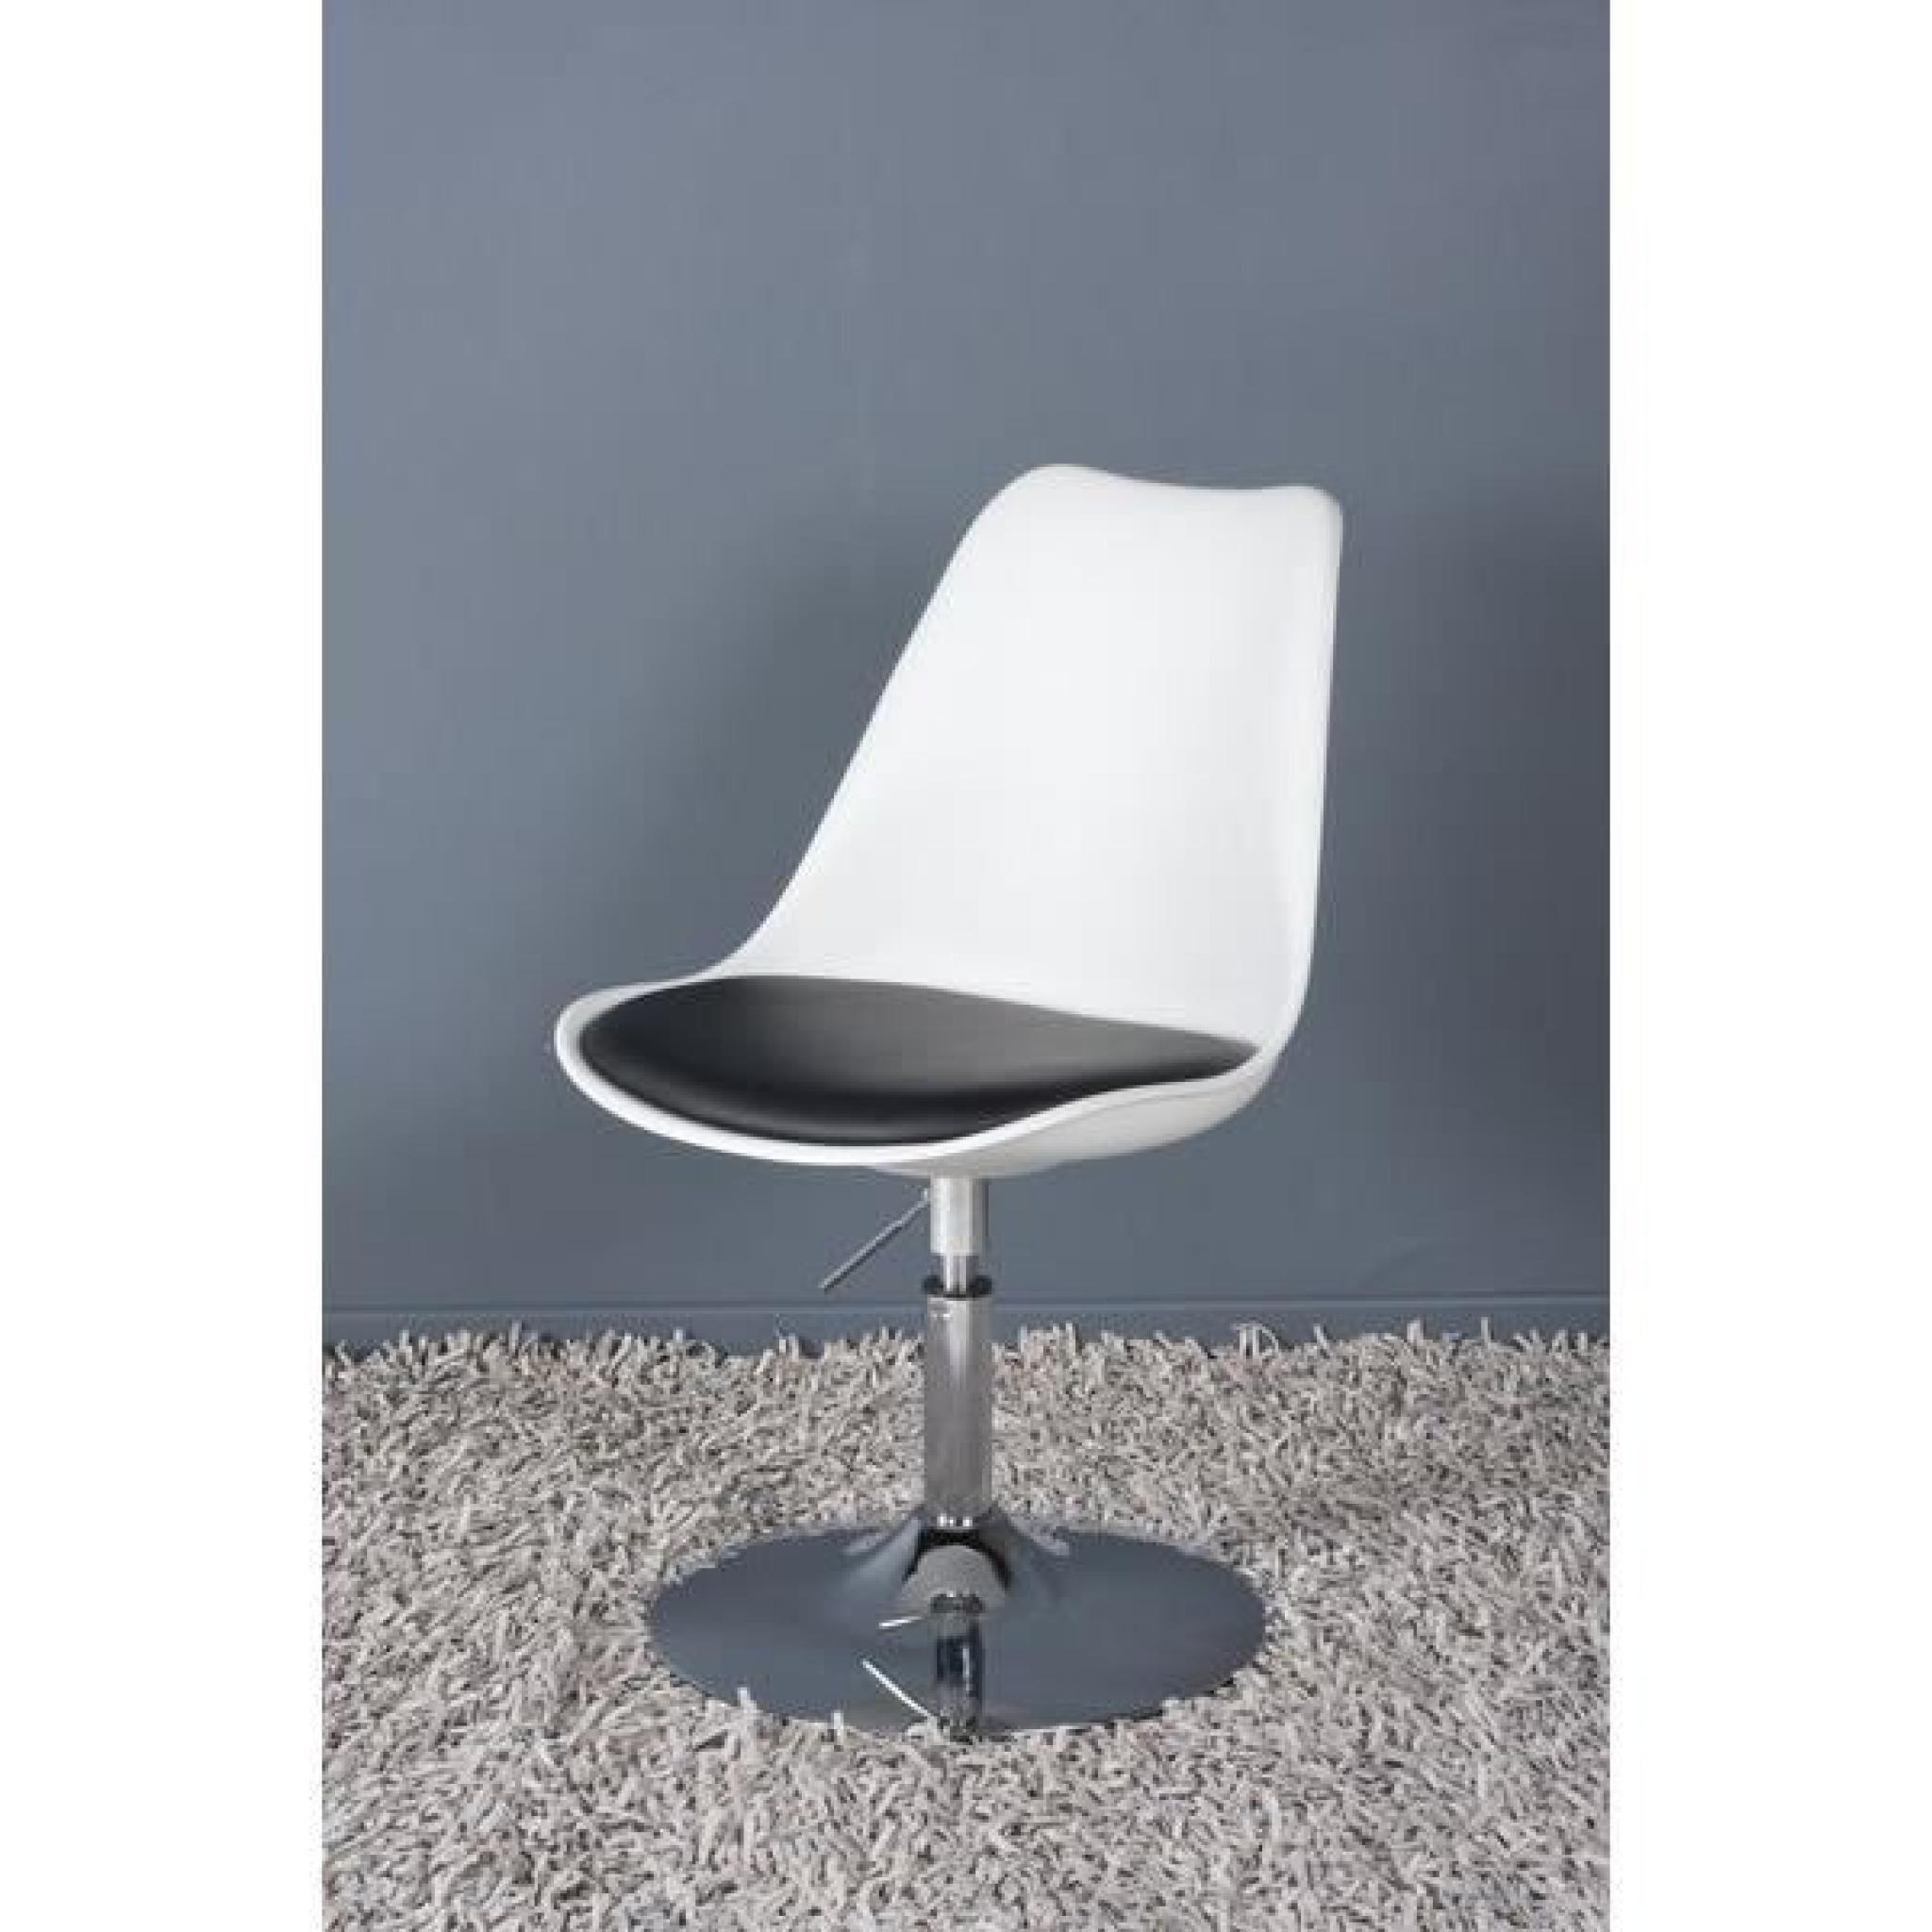 Chaise design en polyur thane de couleur blanch achat for Chaise couleur design pas cher